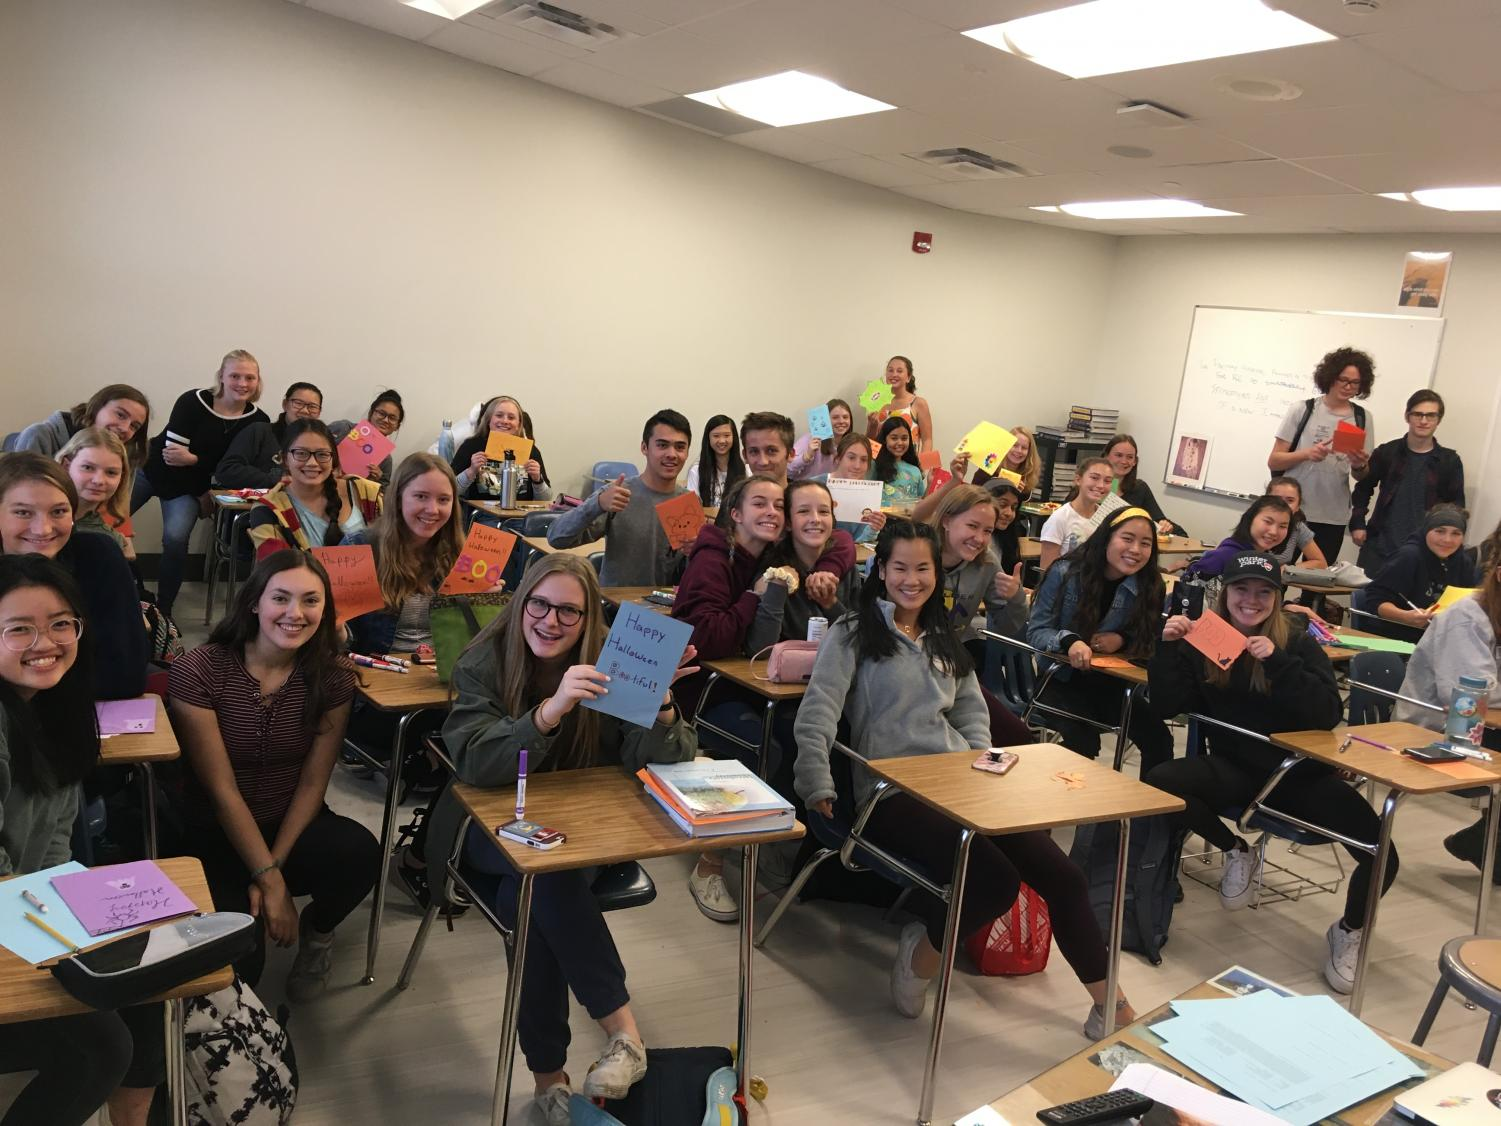 Though the club began mere weeks ago, it already has a strong following of BHS students ready and excited to give back to their communities. Photo via Charlotte Gorgemans.